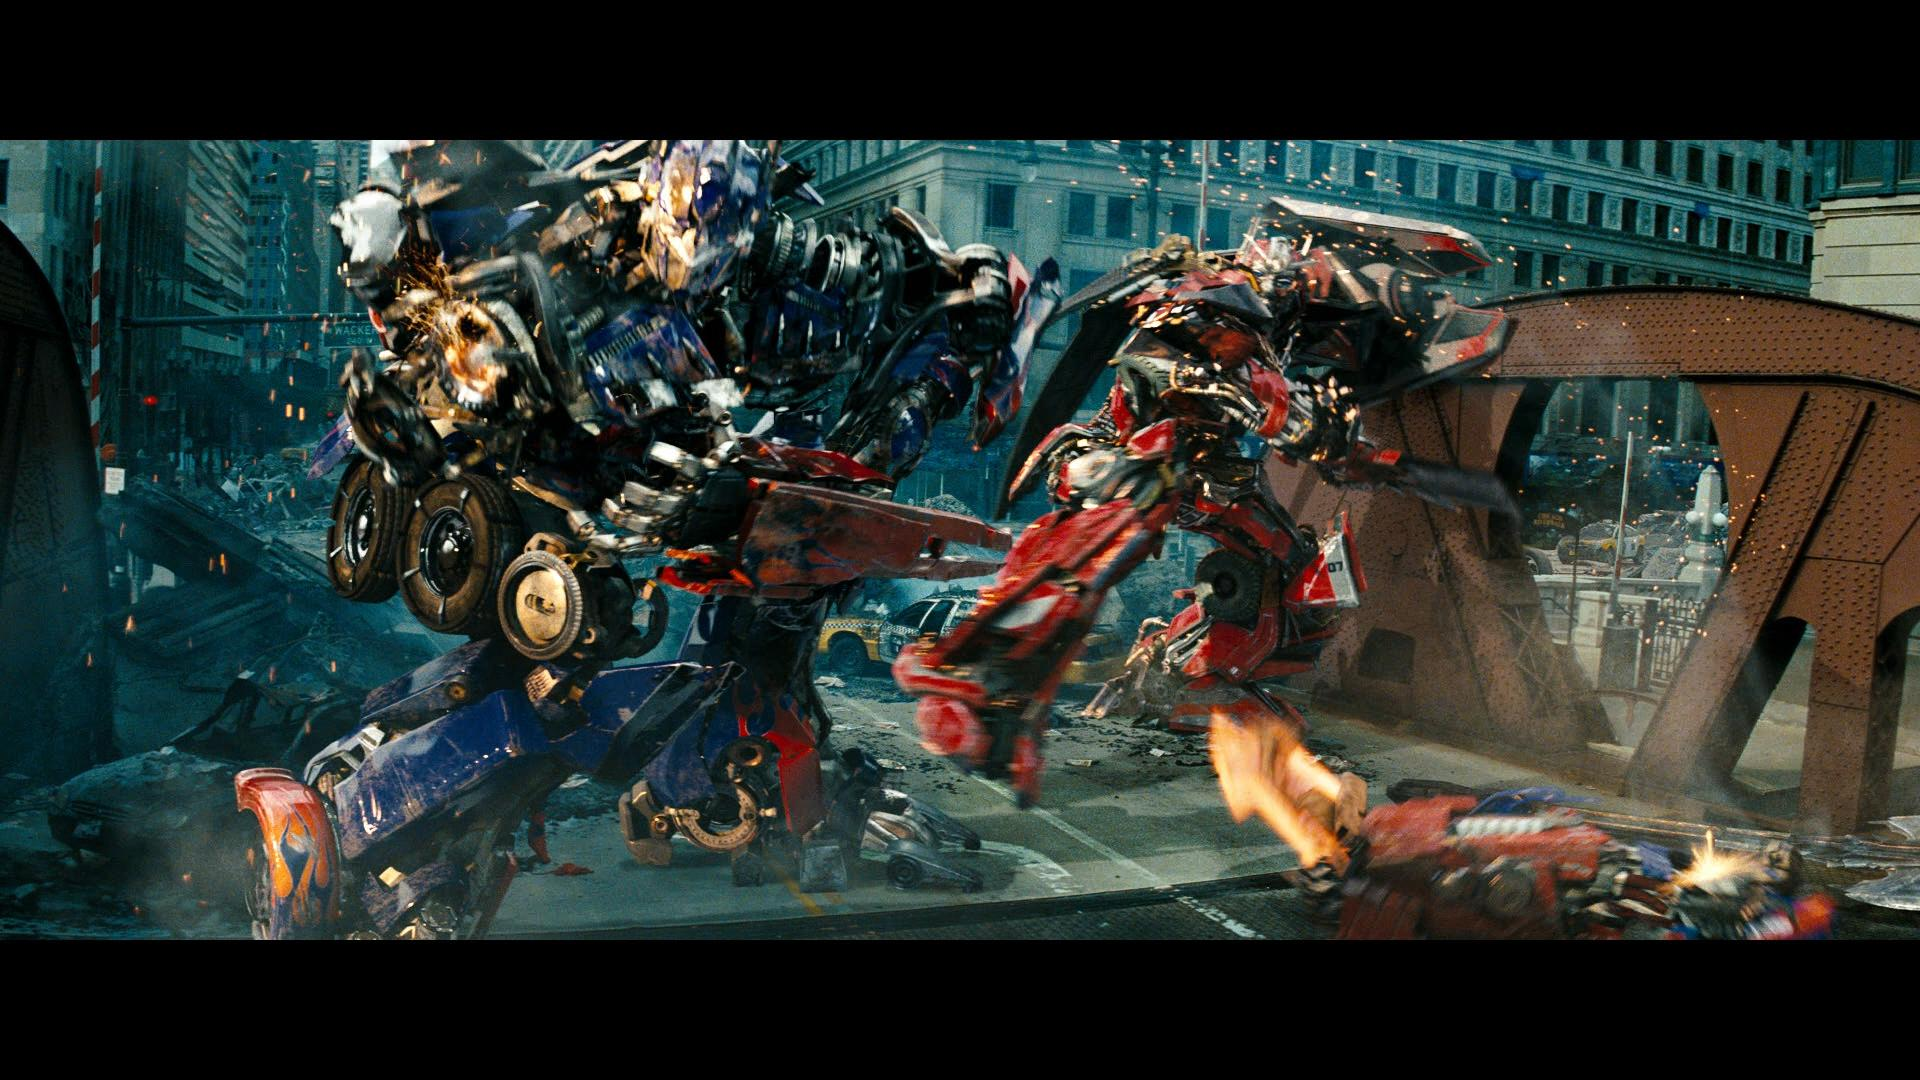 Optimus Prime Dark Of The Moon Wallpaper Free For Free - Pc Game , HD Wallpaper & Backgrounds